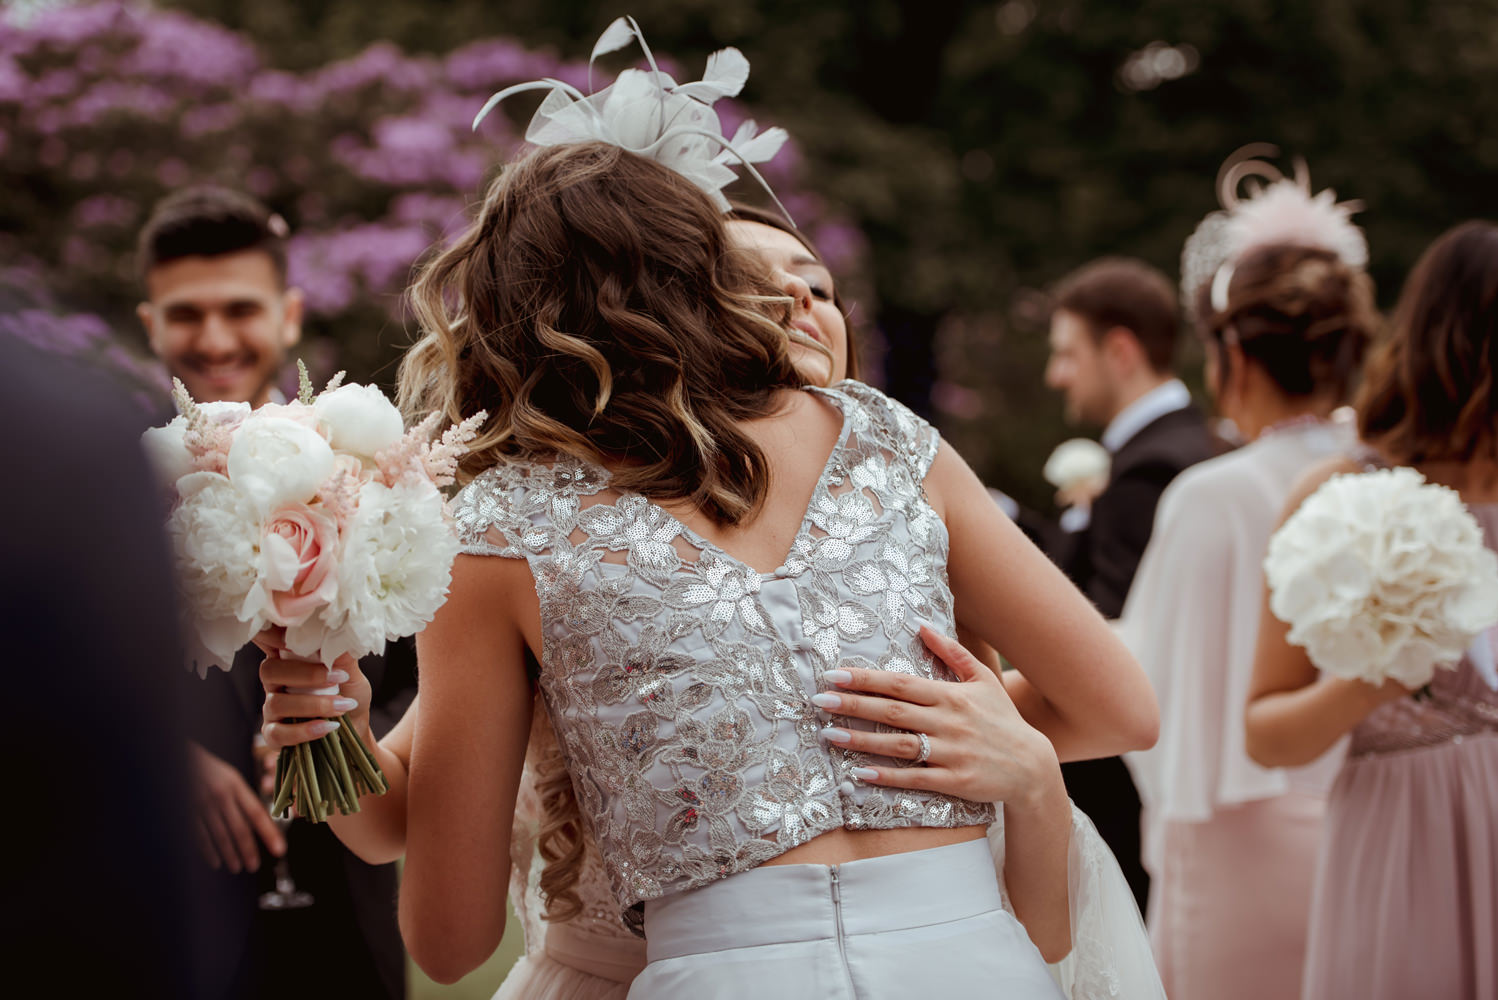 wedding-ceremony-parsonage-dunmore.jpg